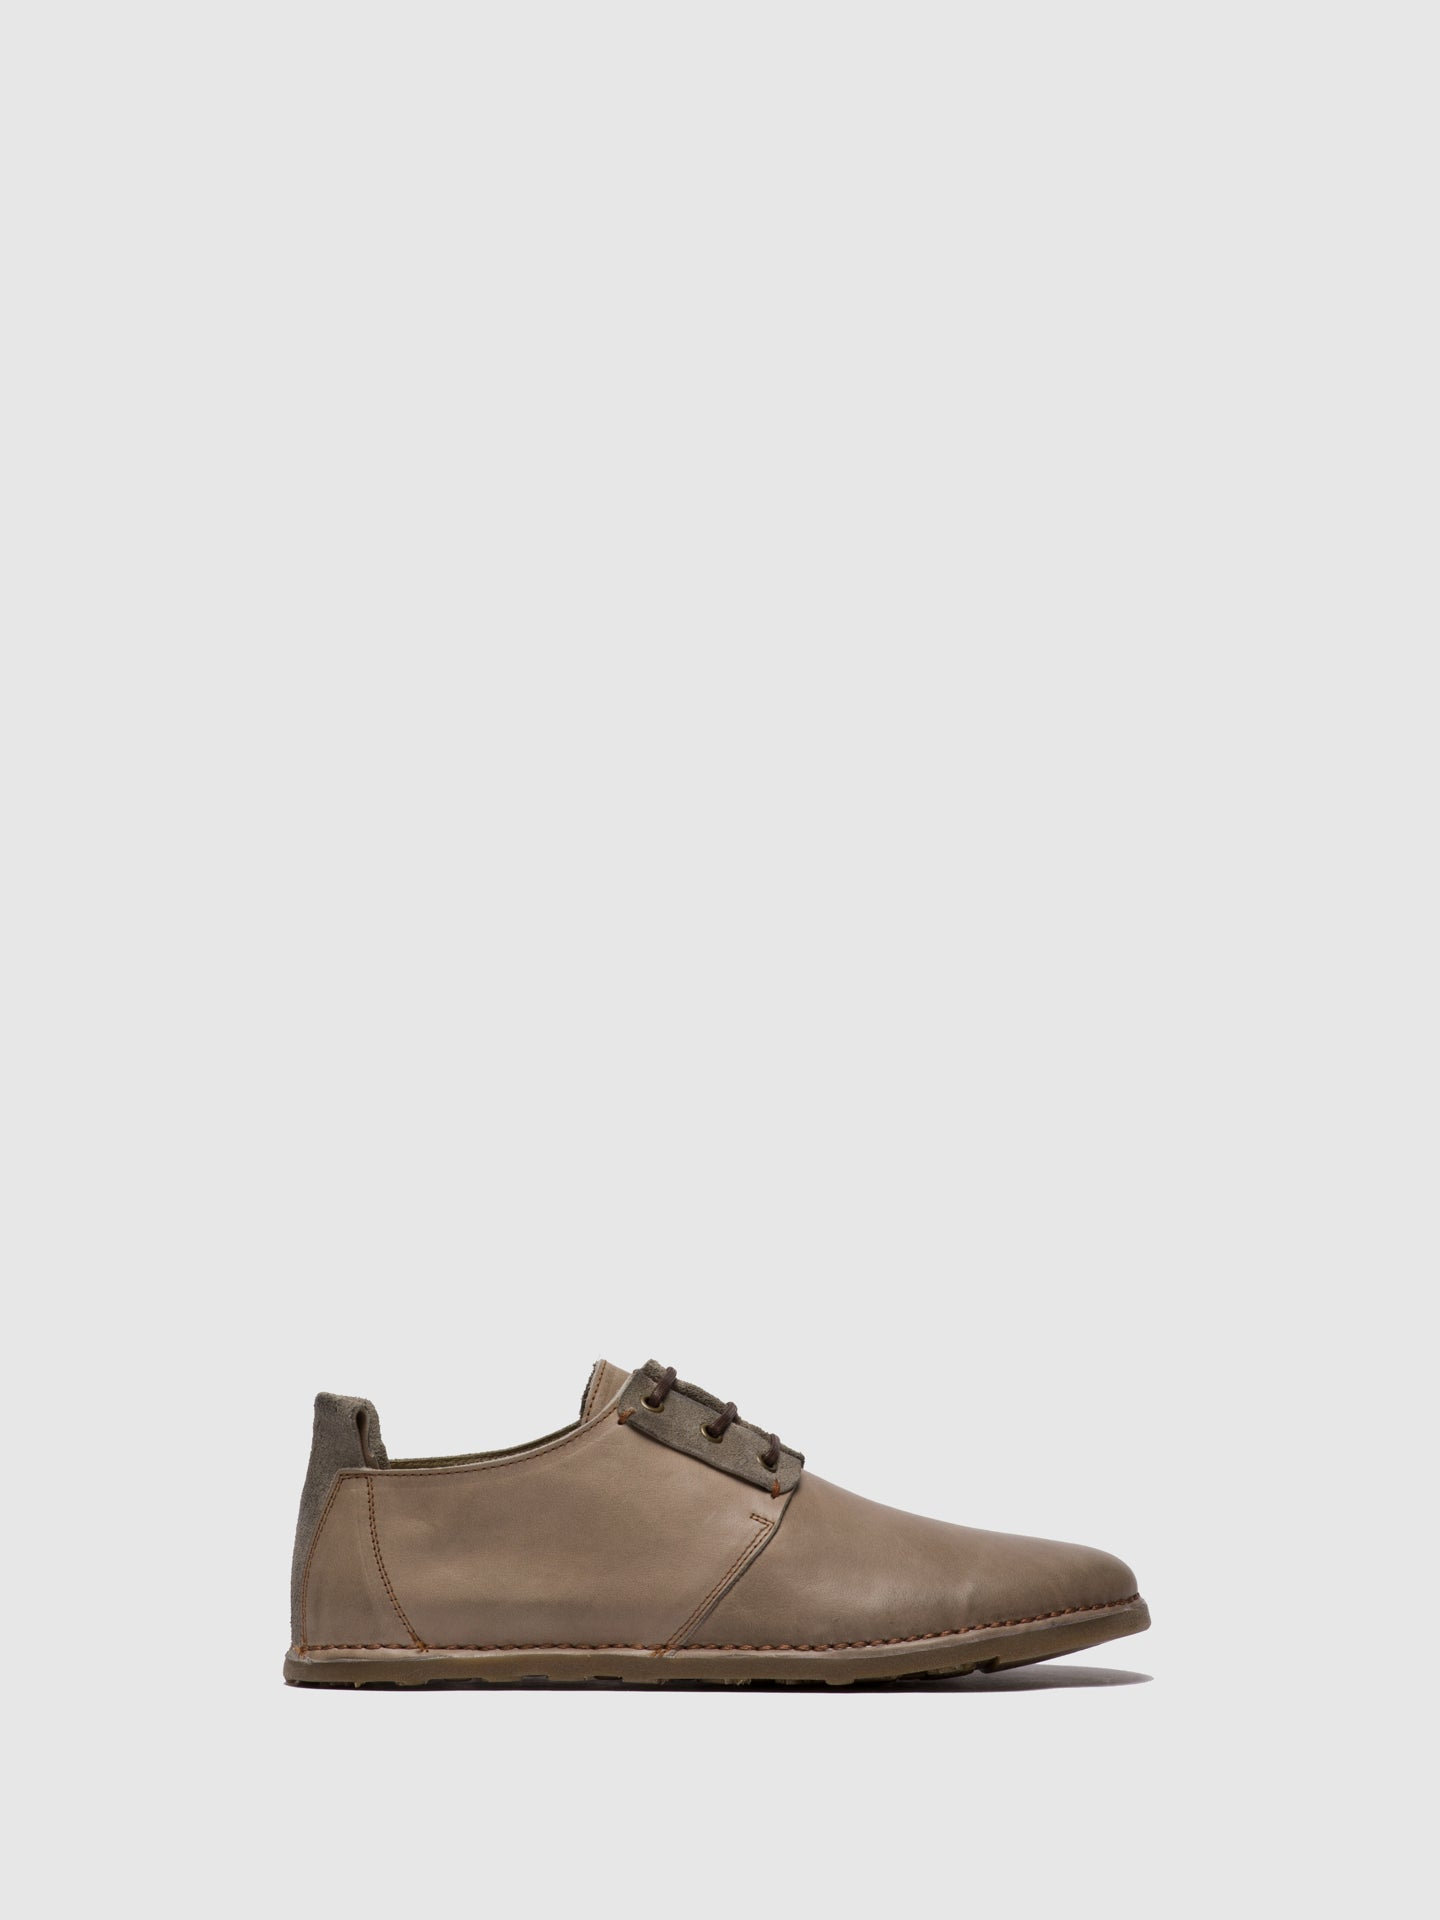 Fly London Wheat Lace-up Shoes